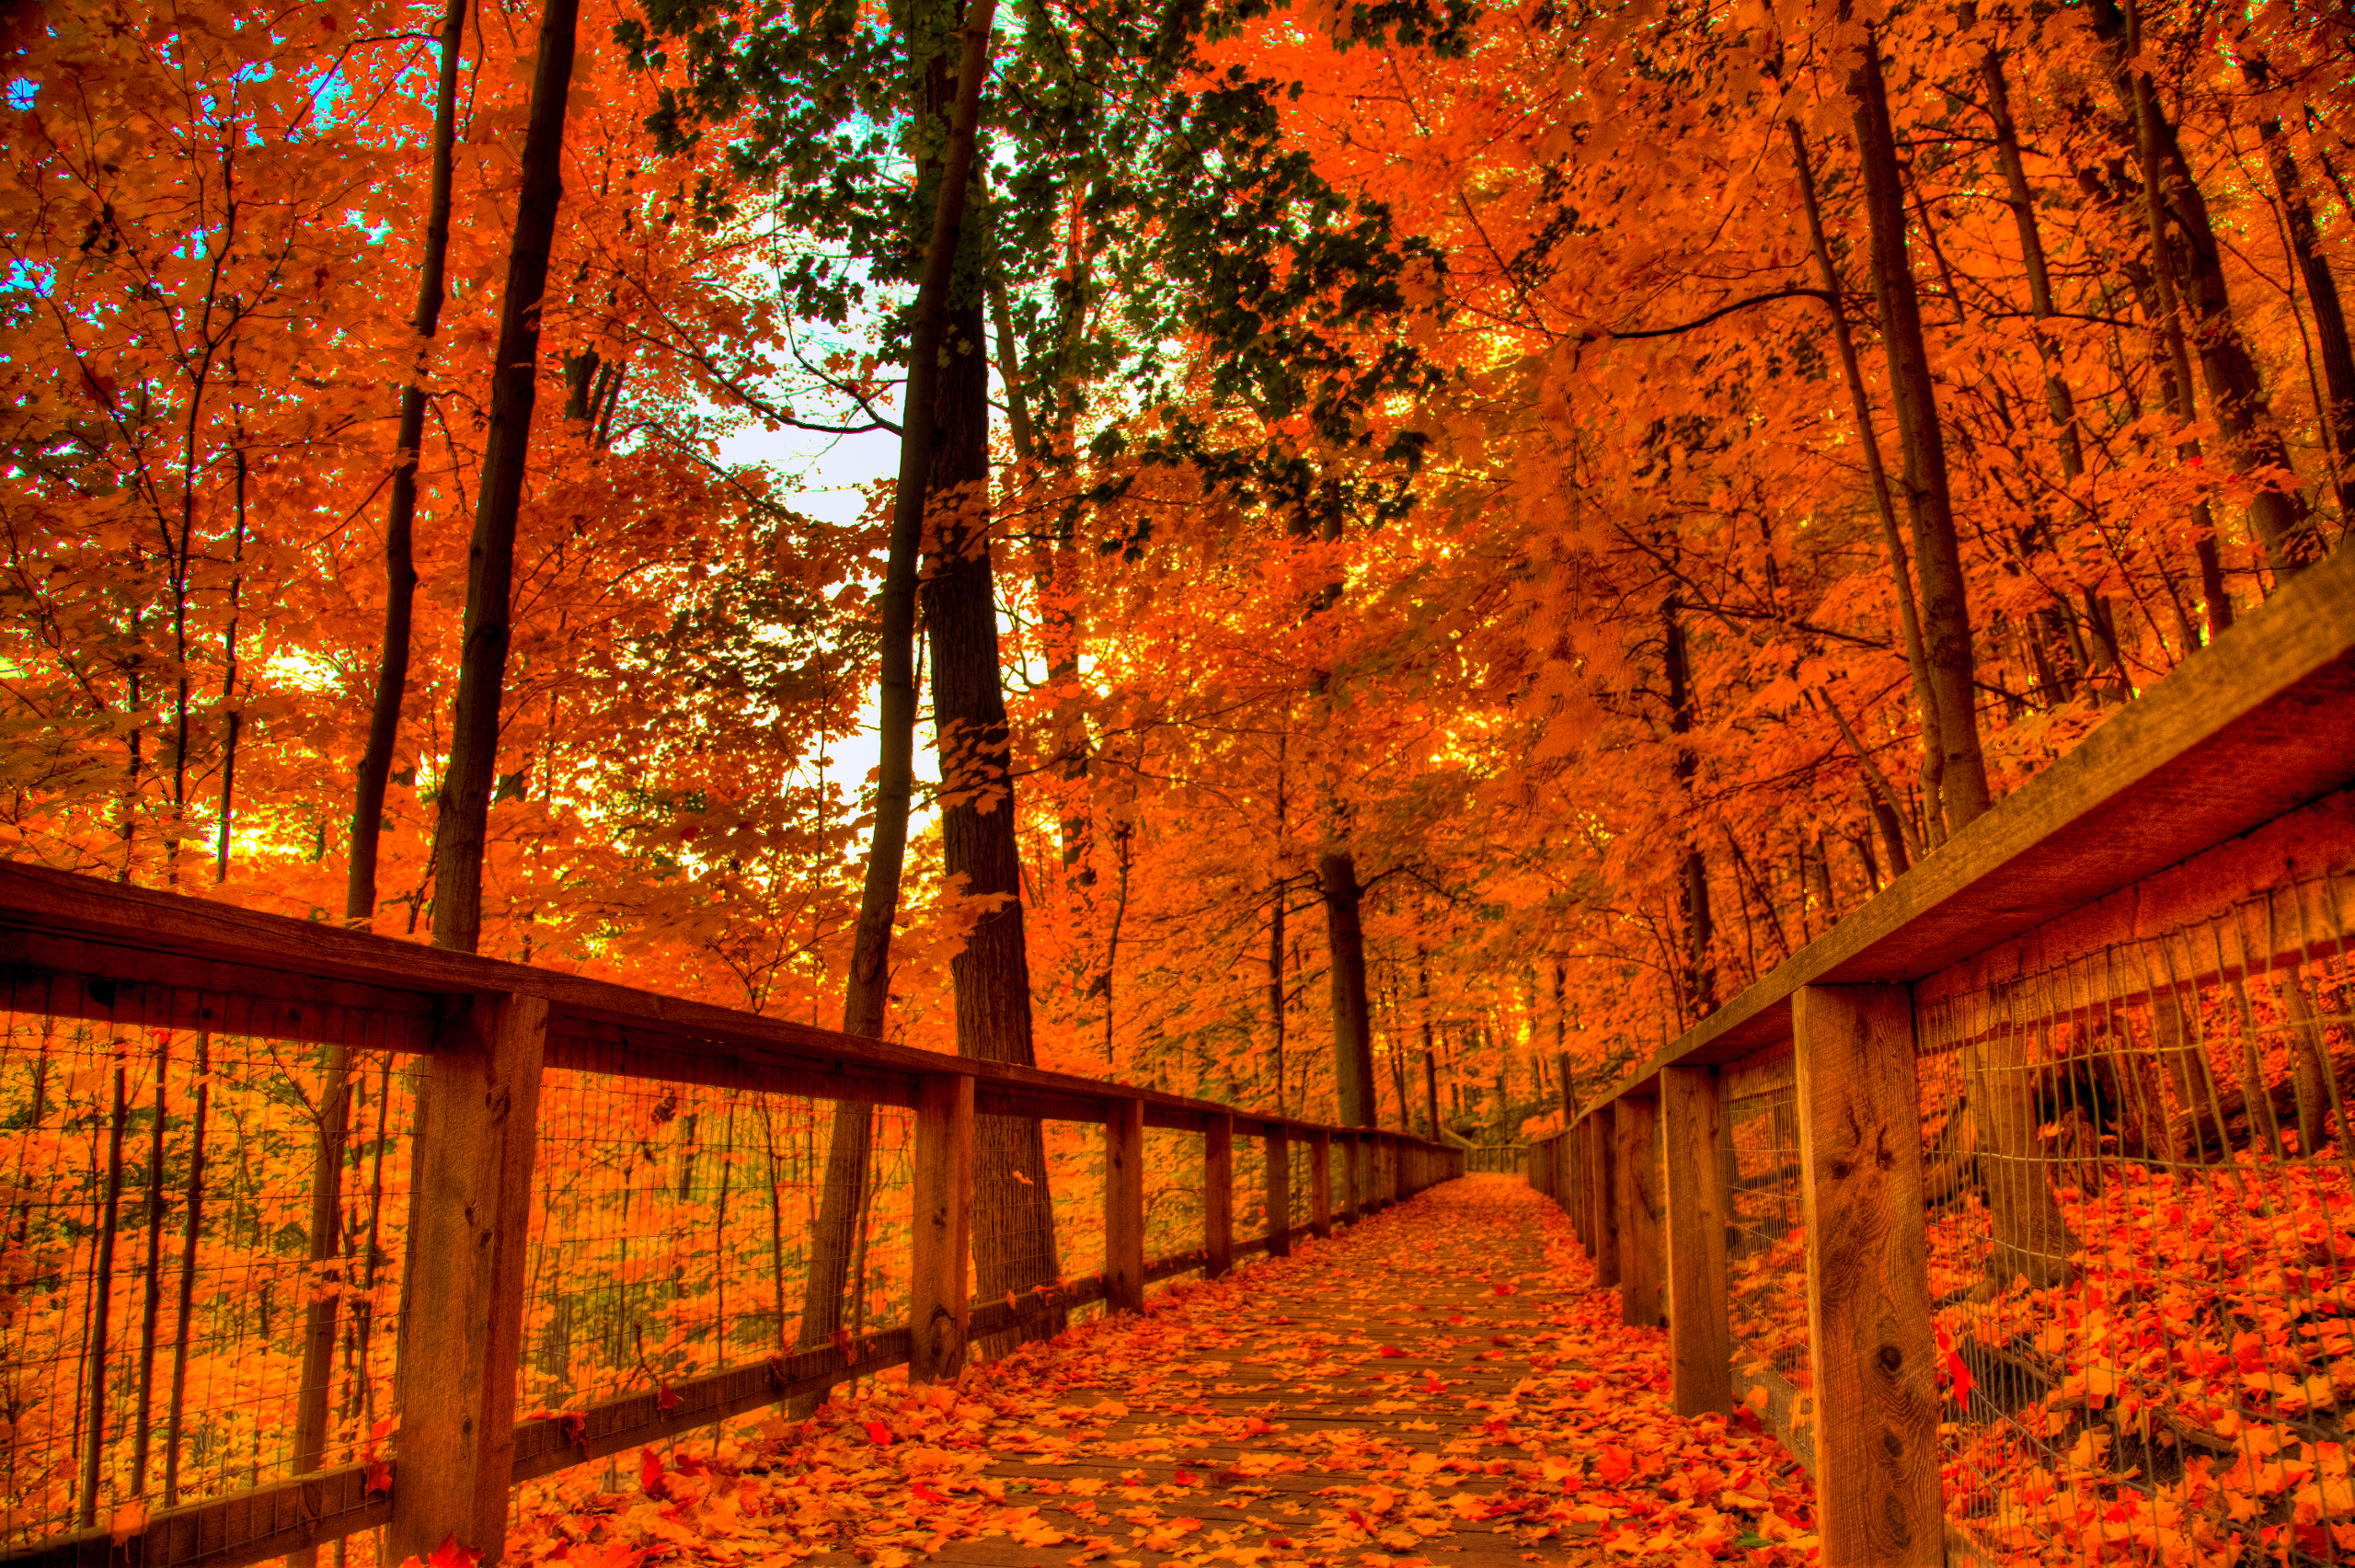 orange fall path leaves pumpkins autum trees nature landscape leaf leaves 2560x2048 local offer android wallpaper